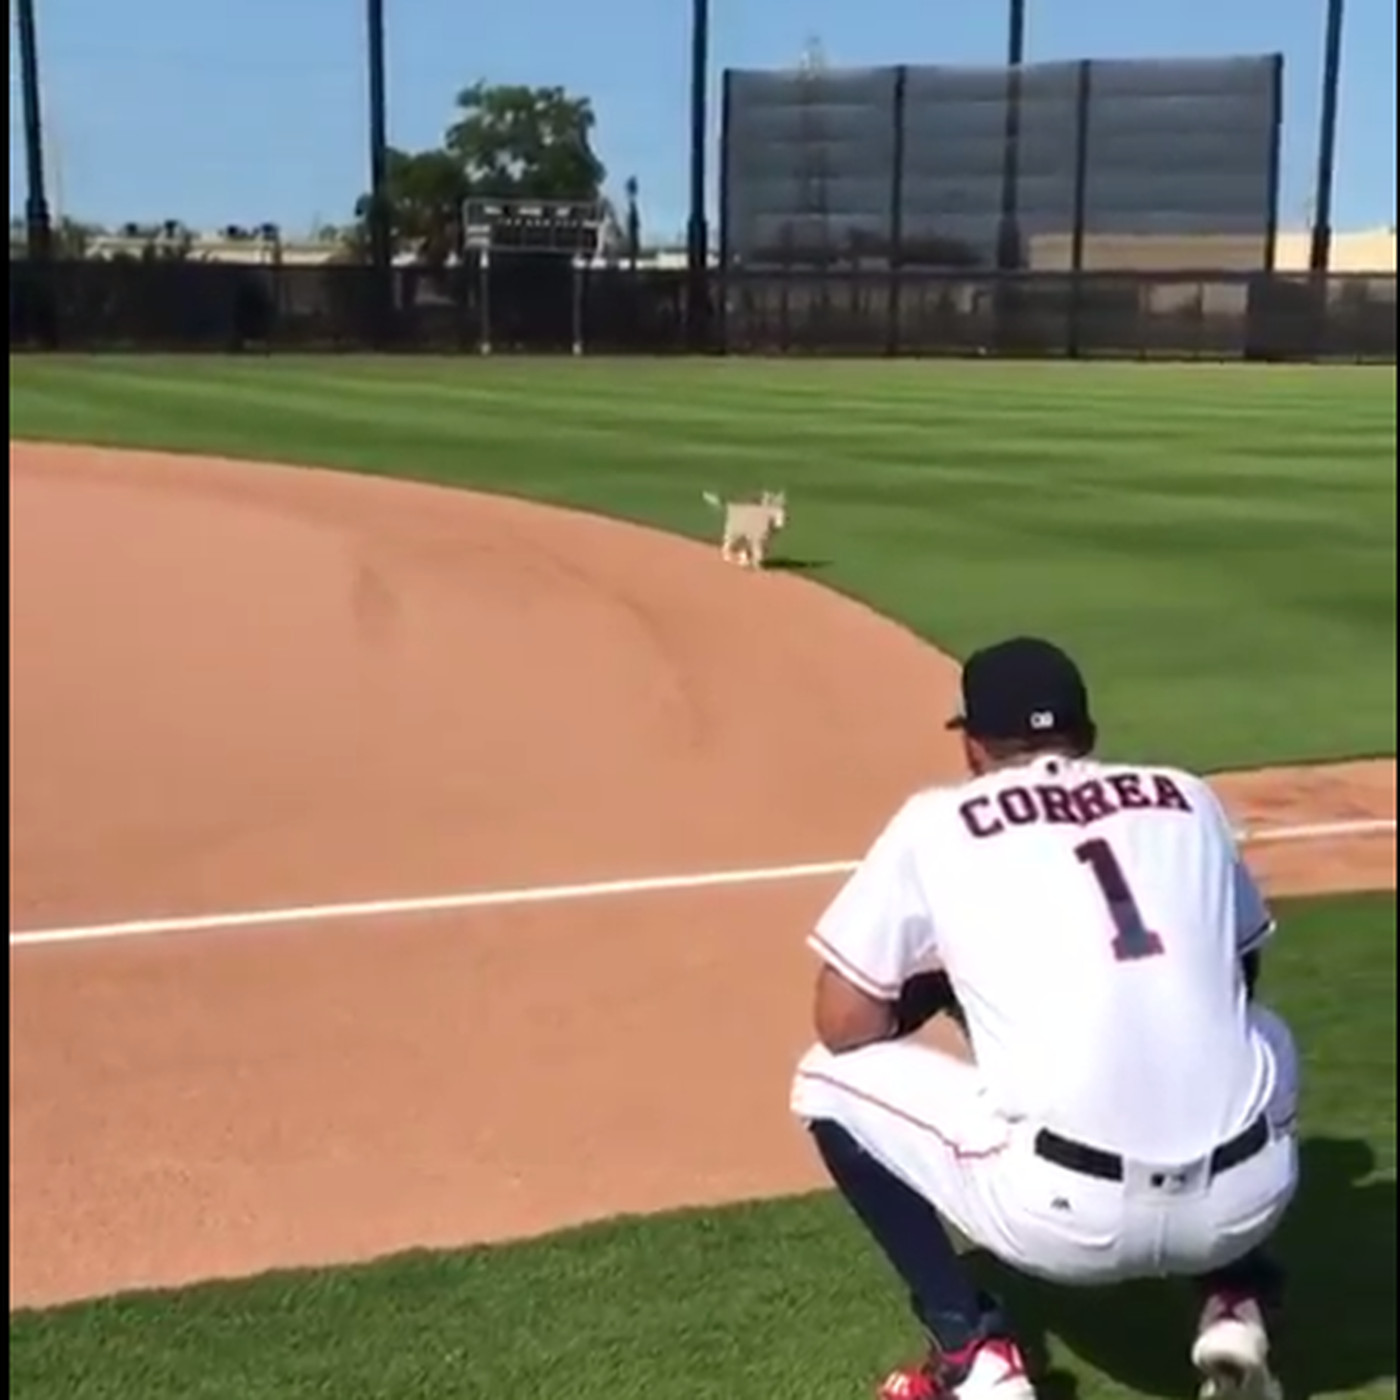 Carlos Correa S Puppy Named Groot Helped Him Practice At